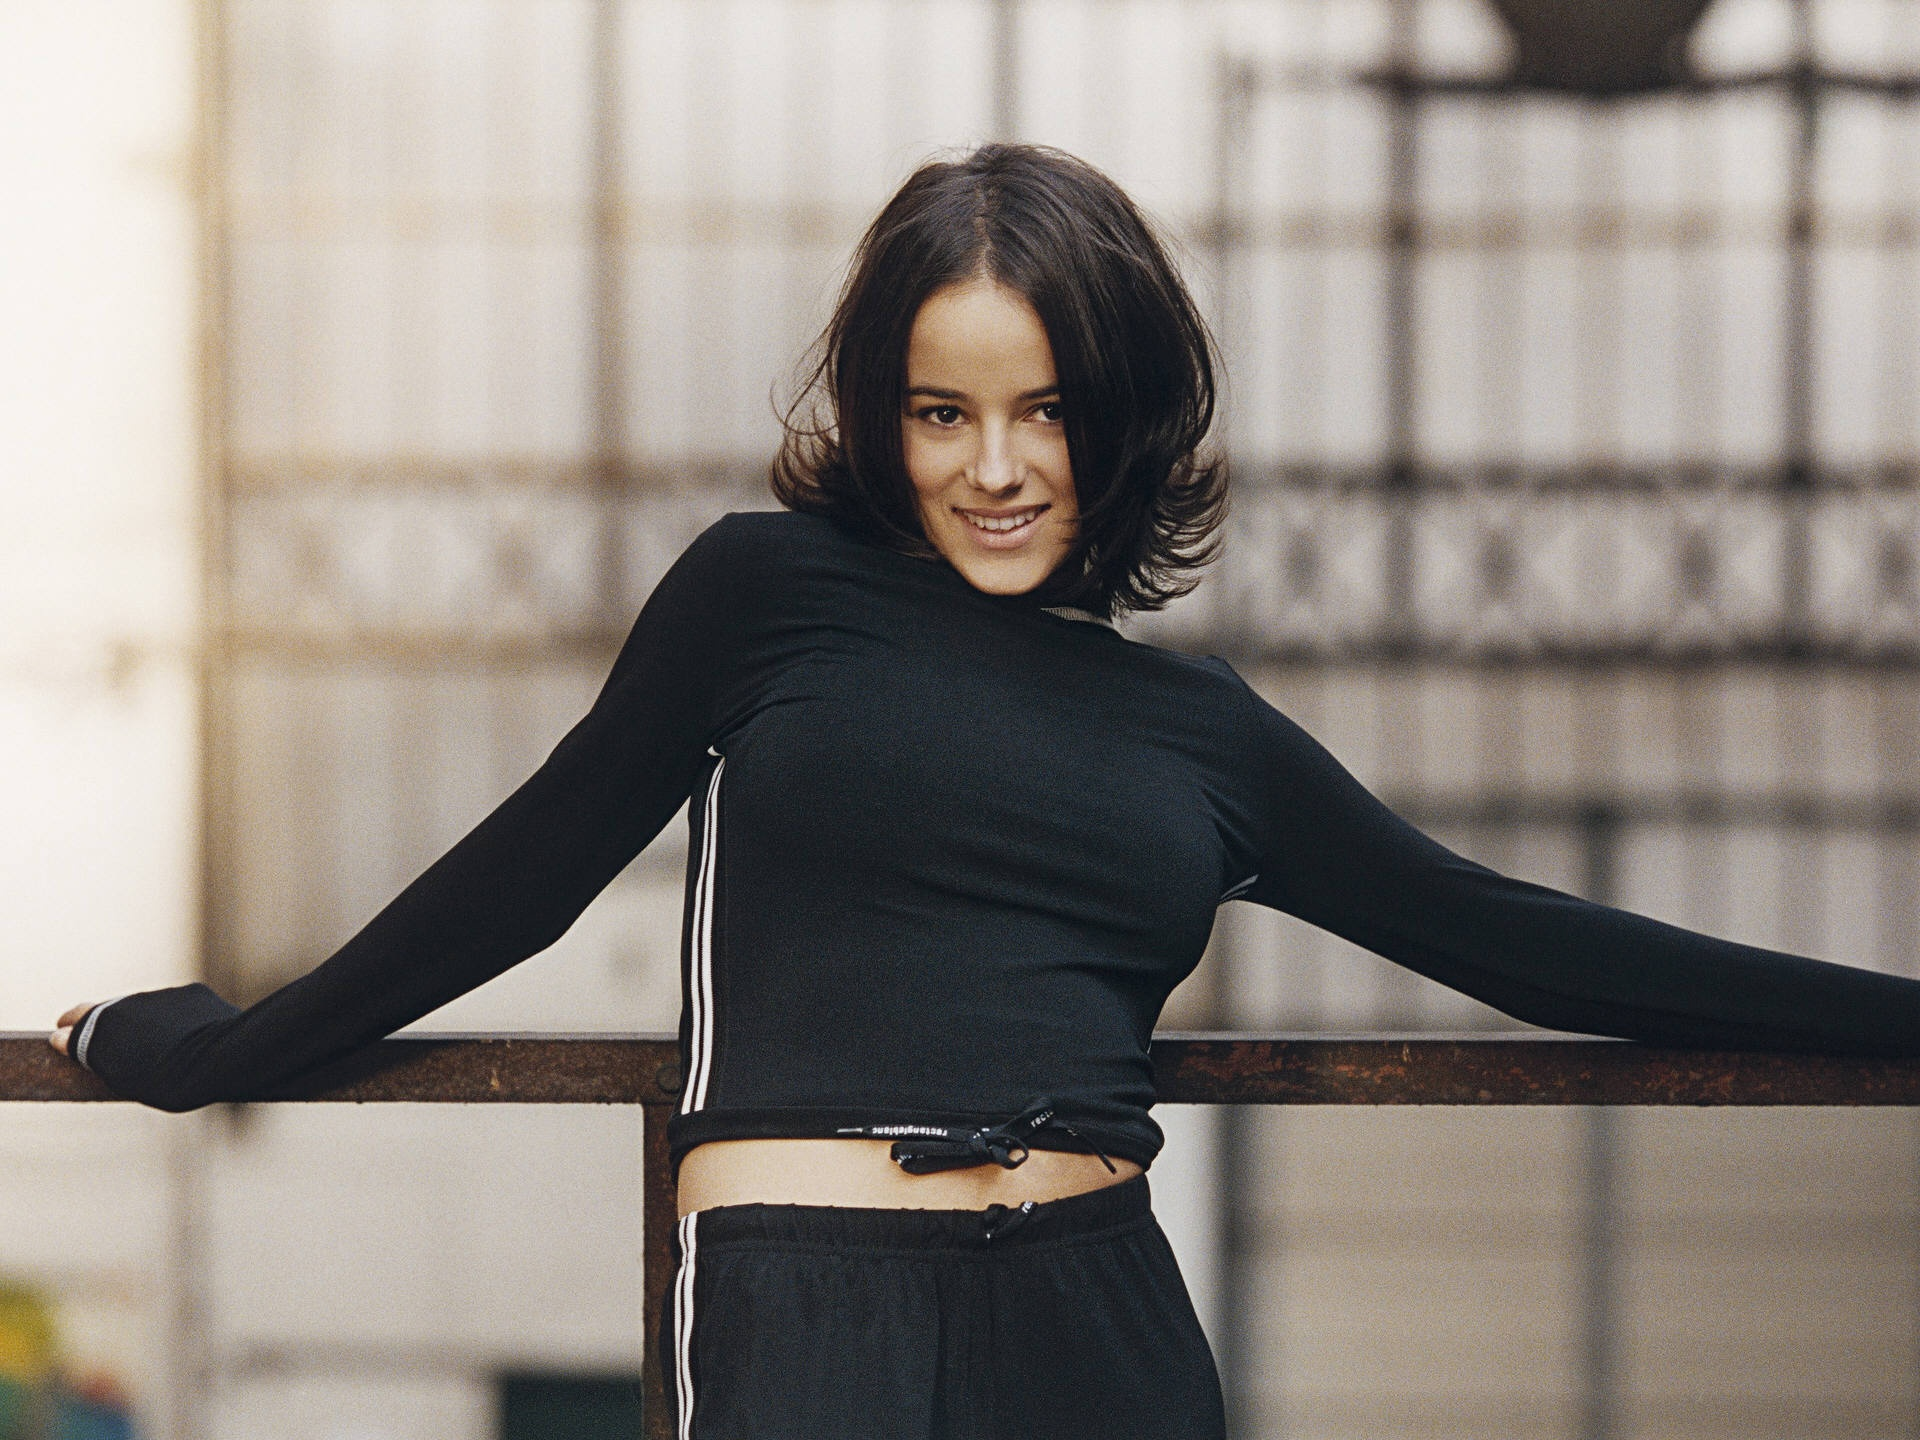 alizee wallpapers hd A2